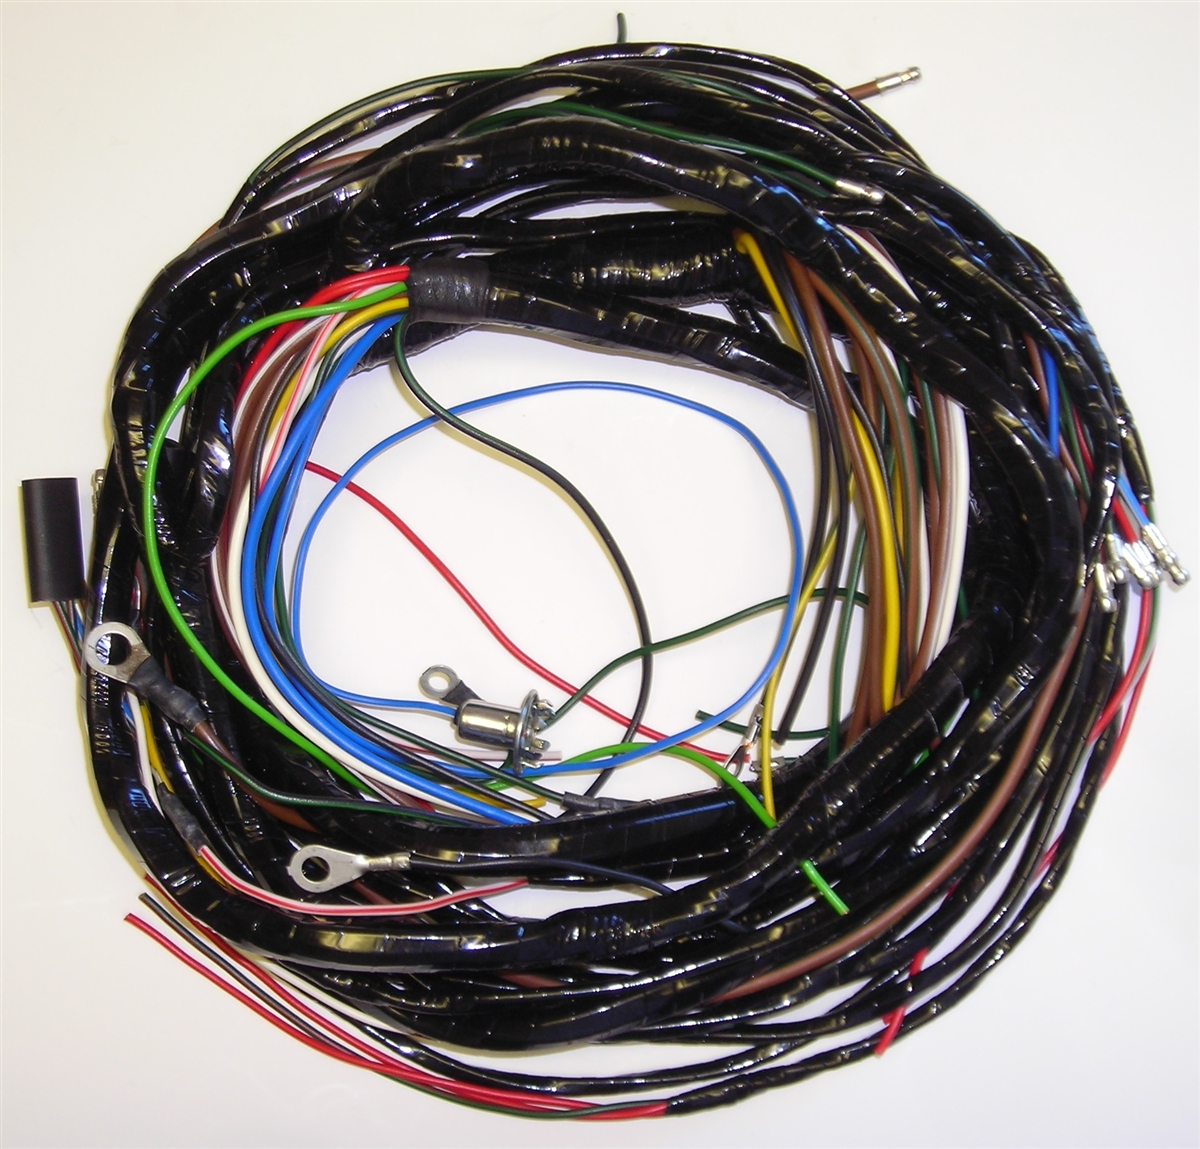 british wiring harness wiring diagram datawrg 1178] british wiring harness british wiring harness